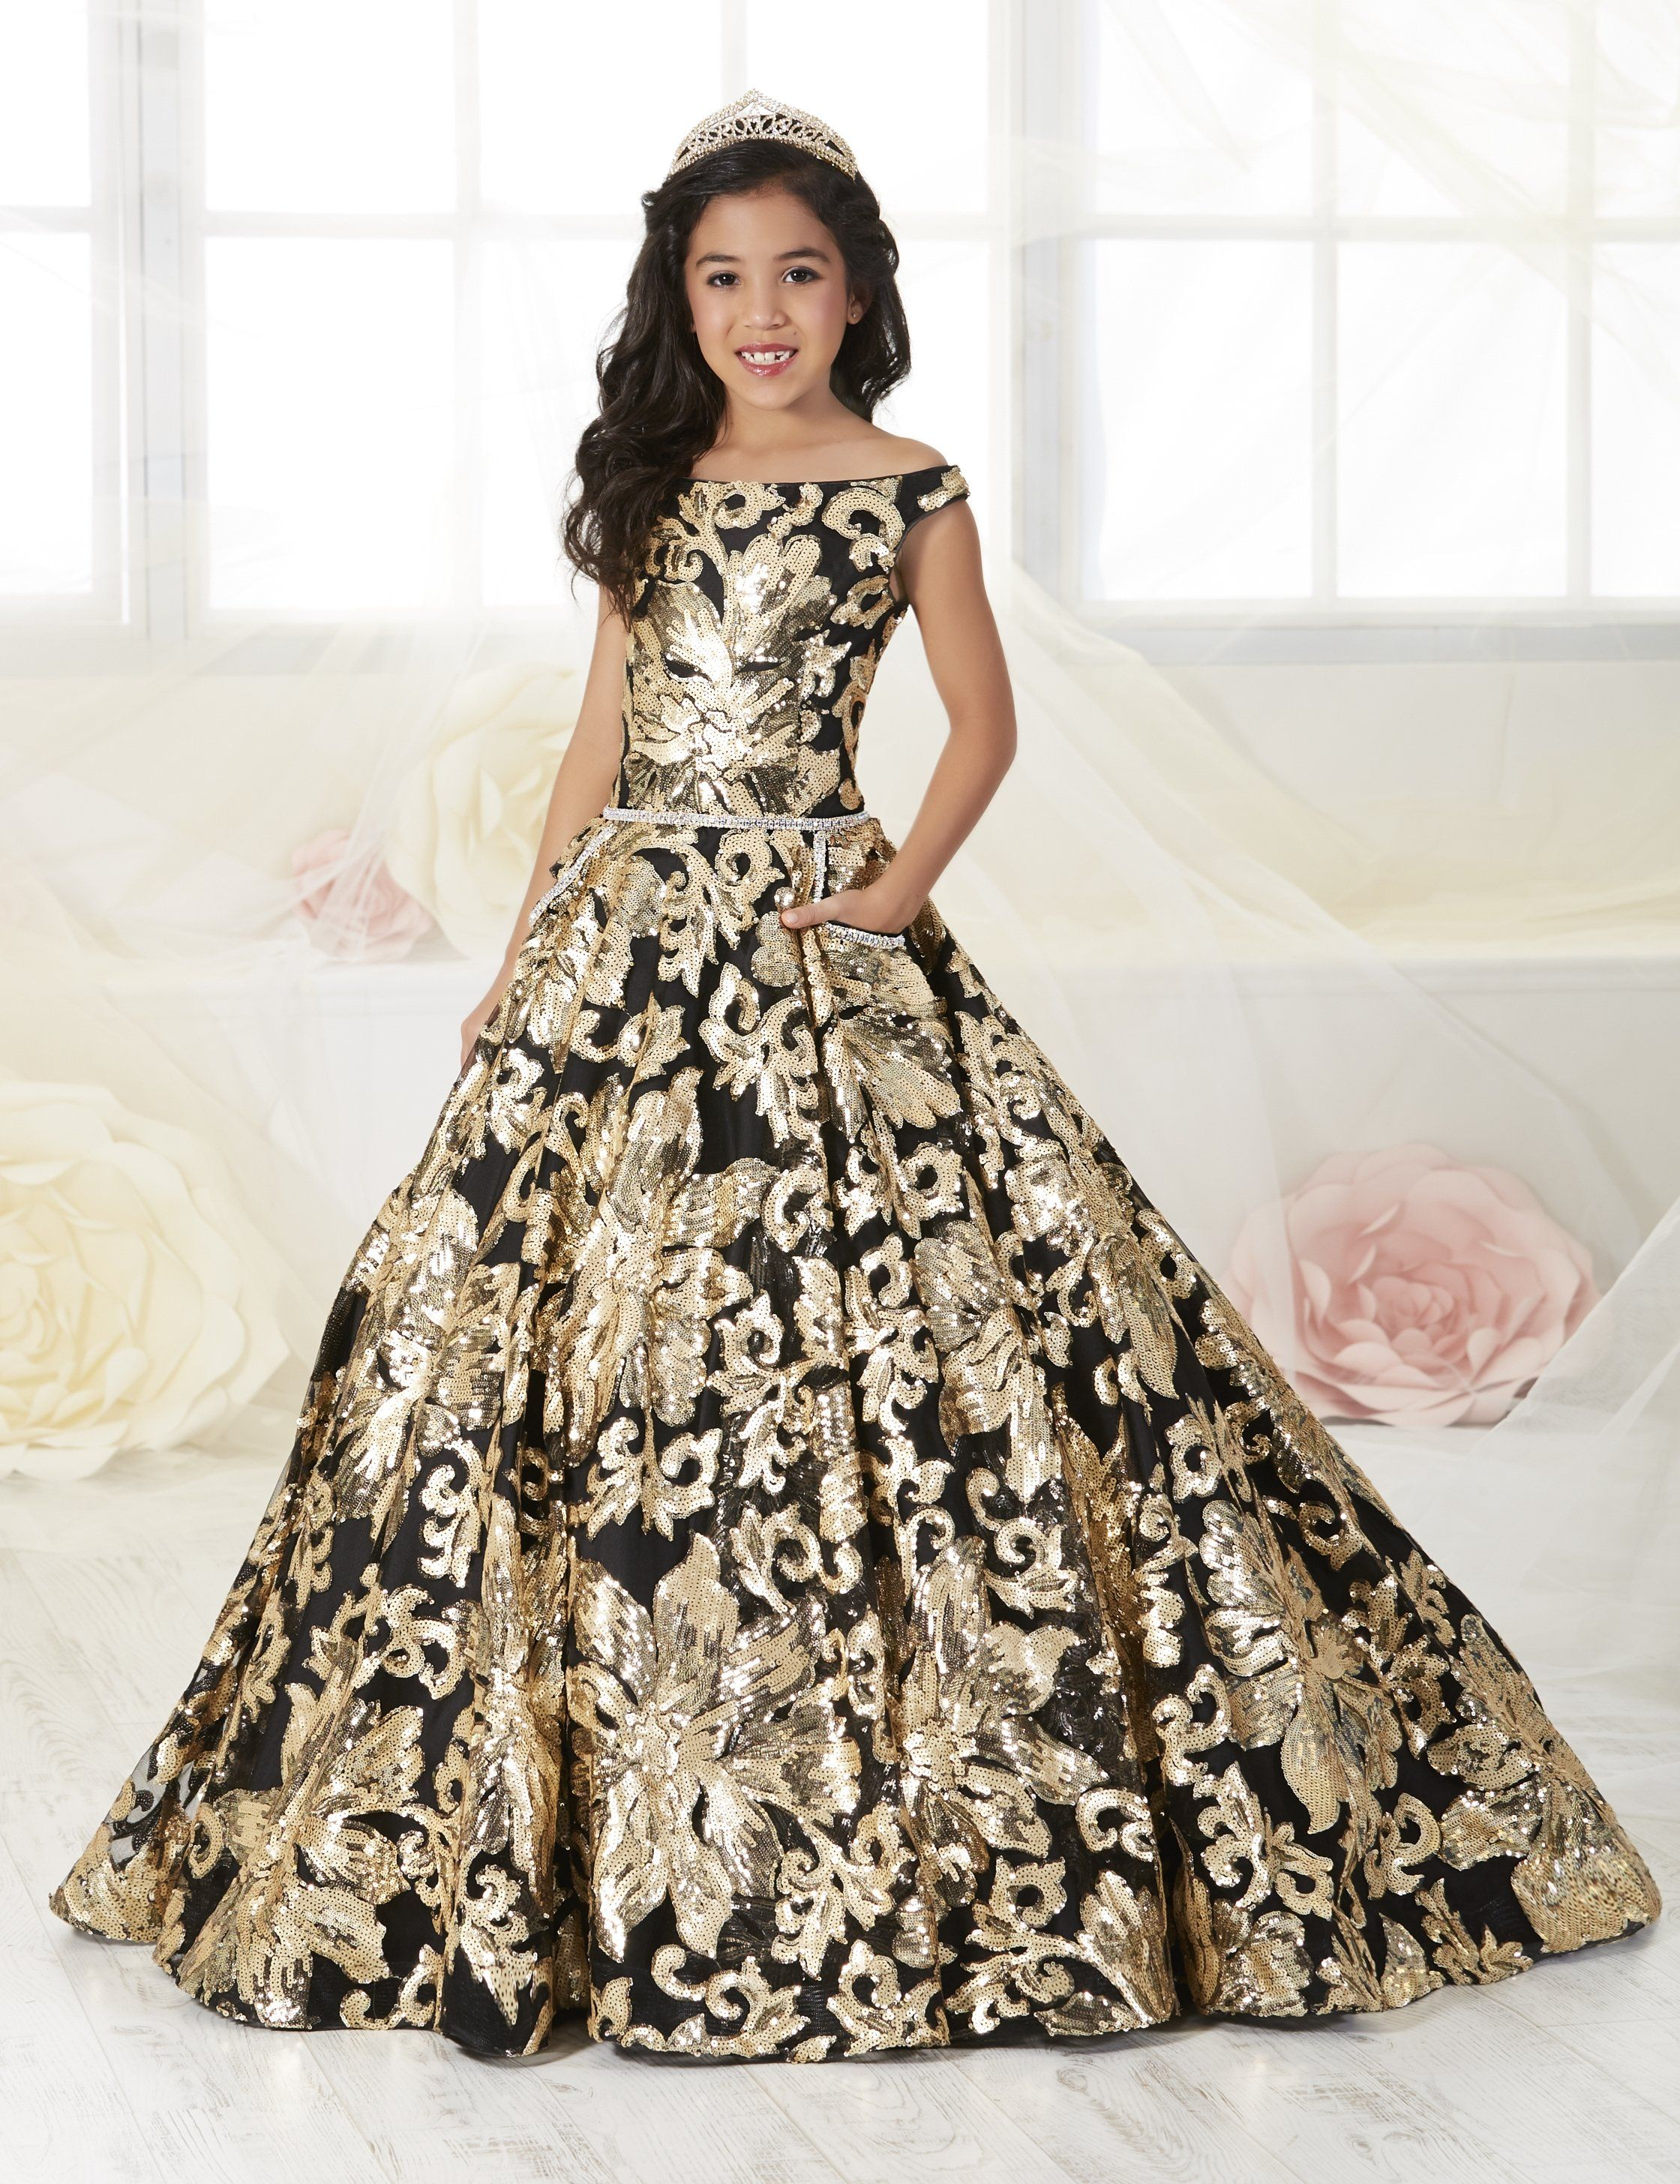 789e2afb36 Girls Floral Sequined Off Shoulder Dress by Tiffany Princess 13532 ...